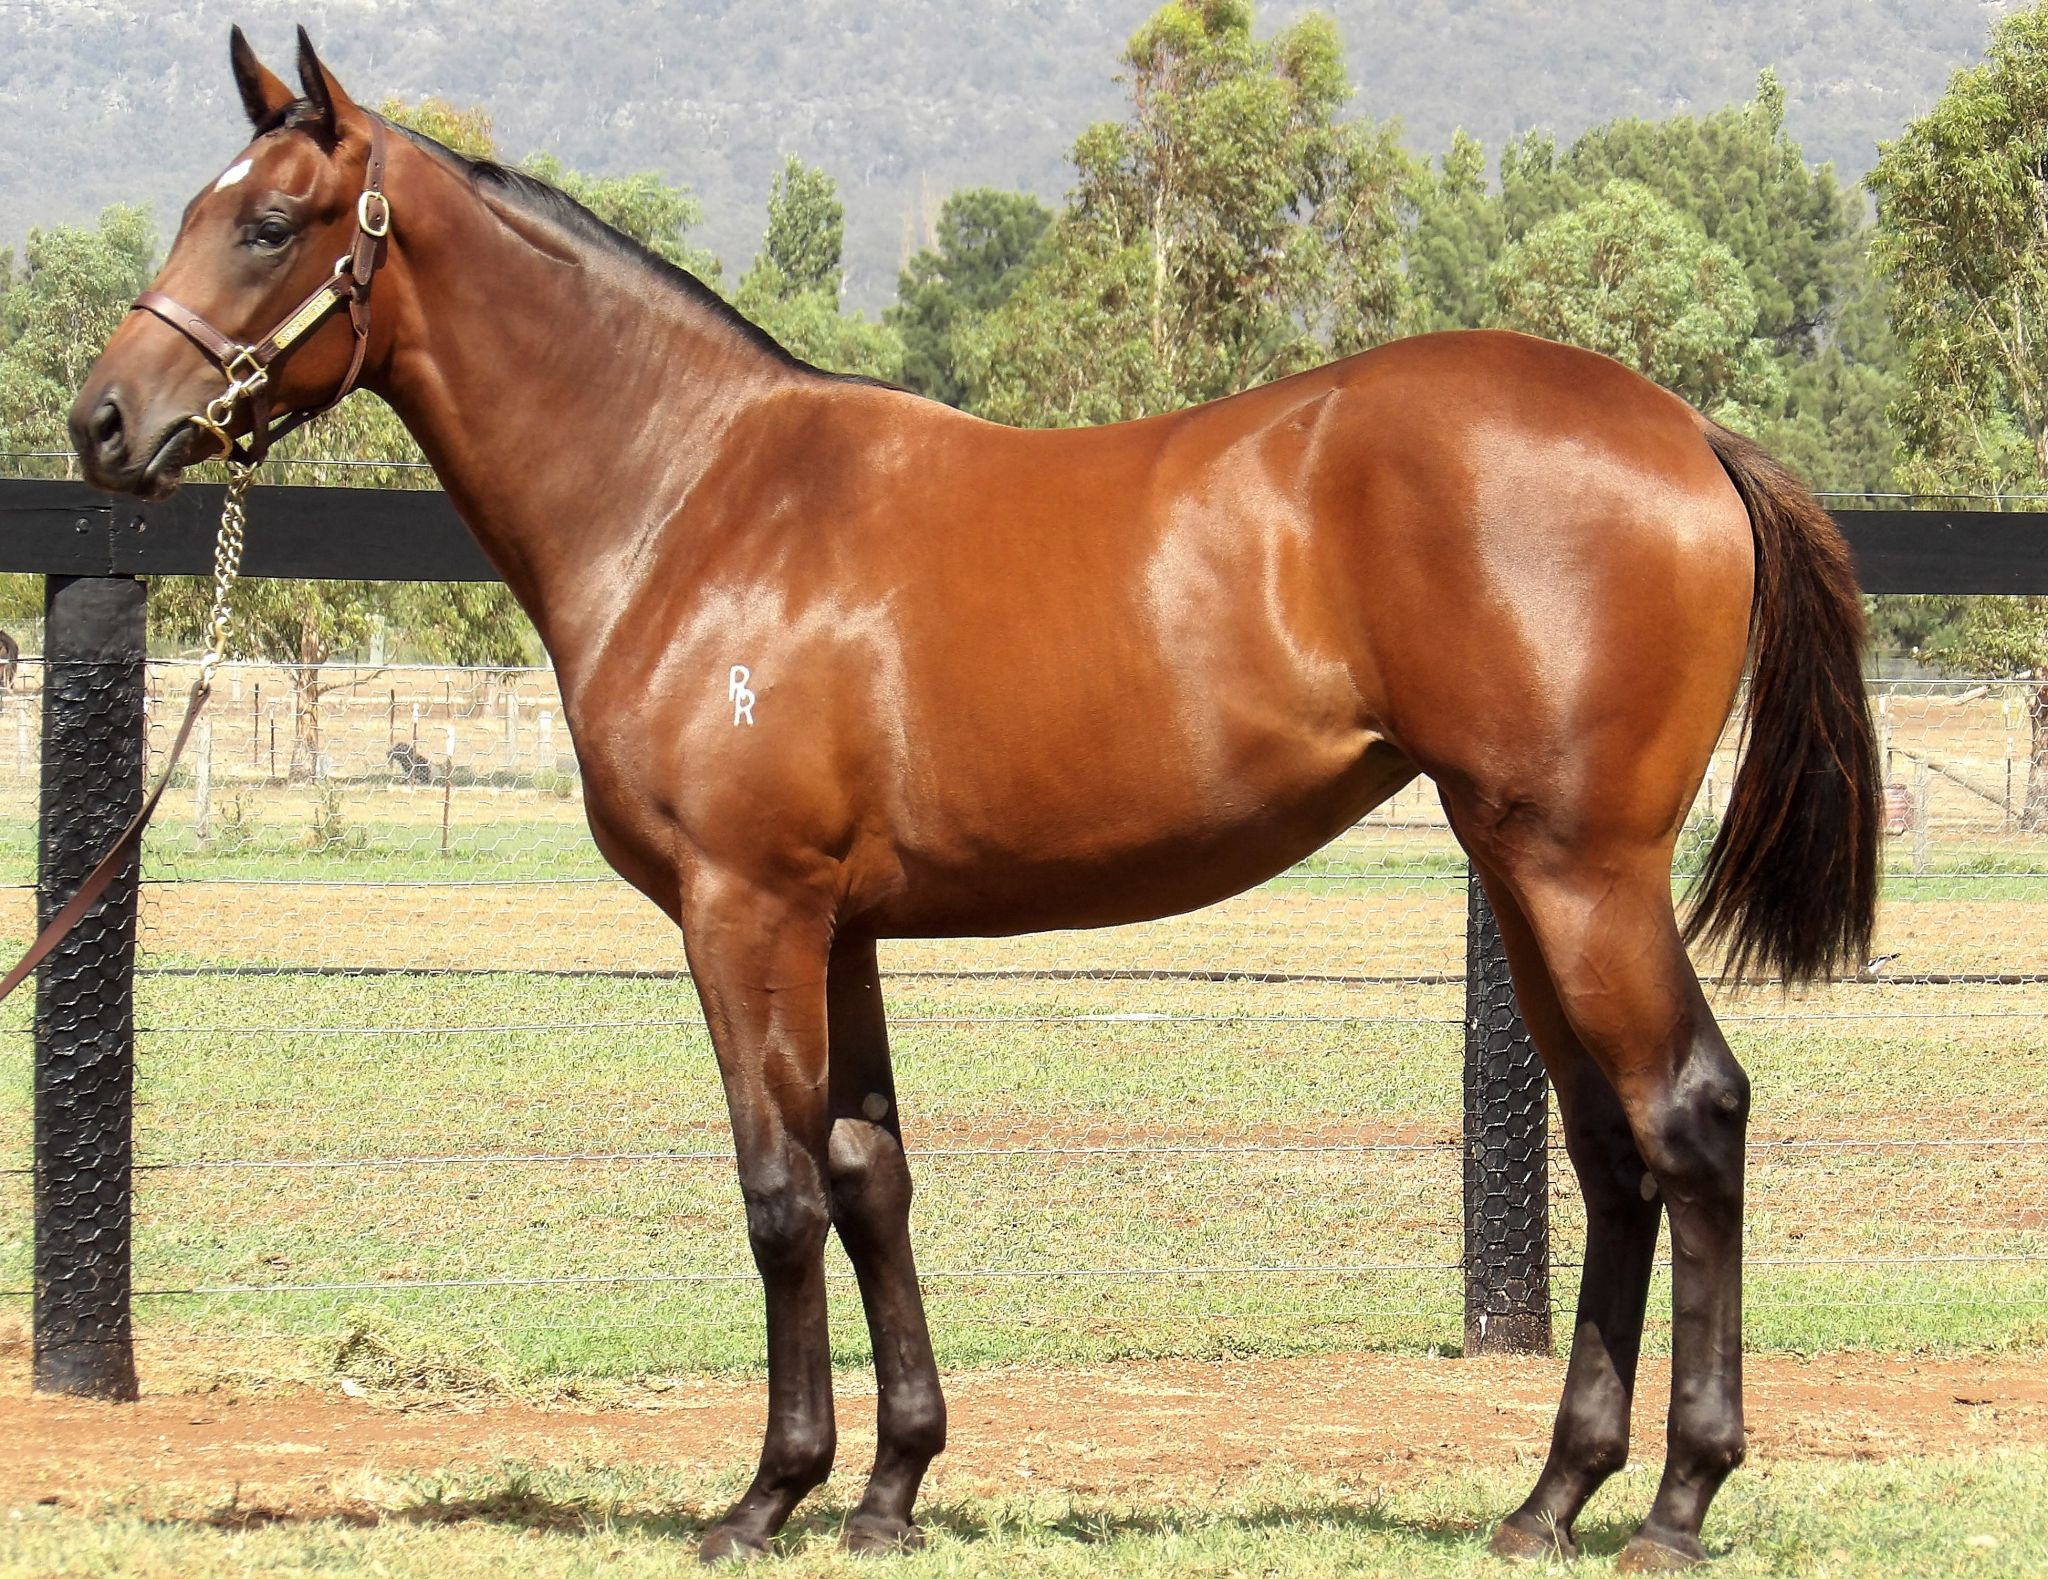 Snippy Fox at 2018 Classic Yearling Sale